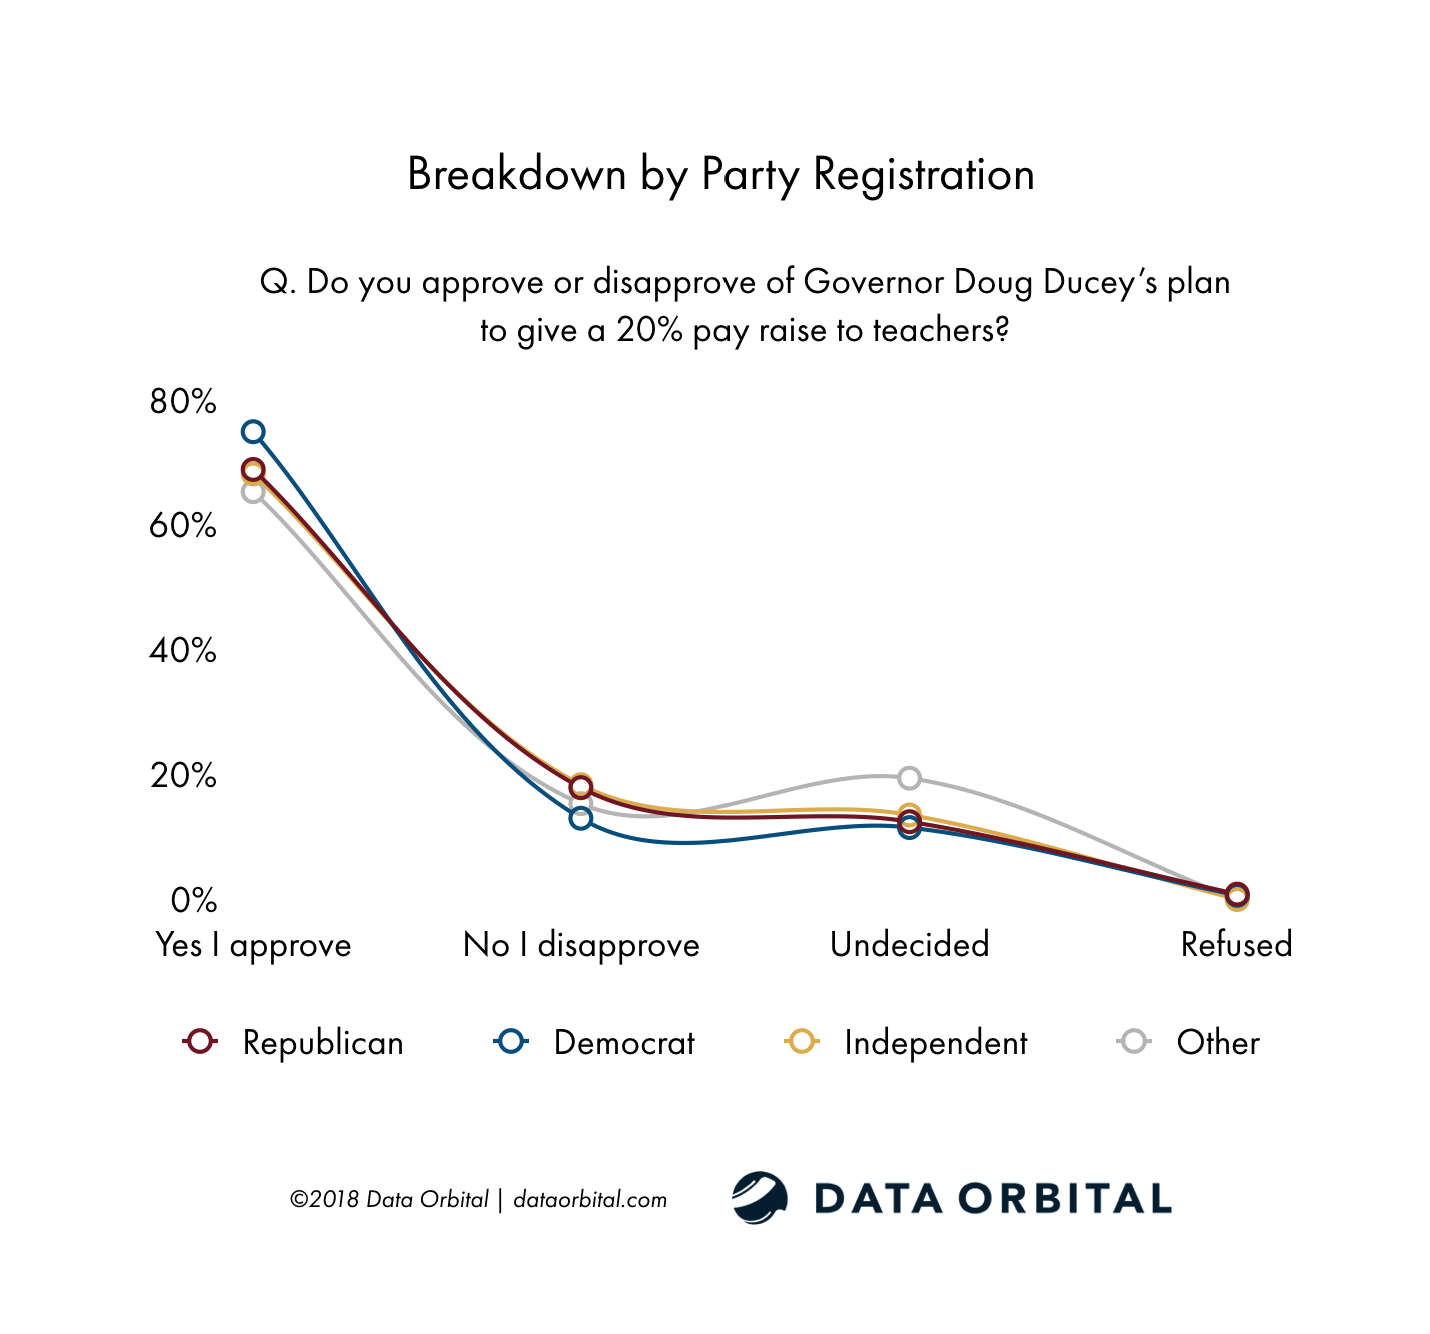 Data Orbital AZ Statewide Poll Do you approve or disapprove of Governor Doug Ducey's plan to give a 20% pay raise to teachers? Breakdown by Party Registration